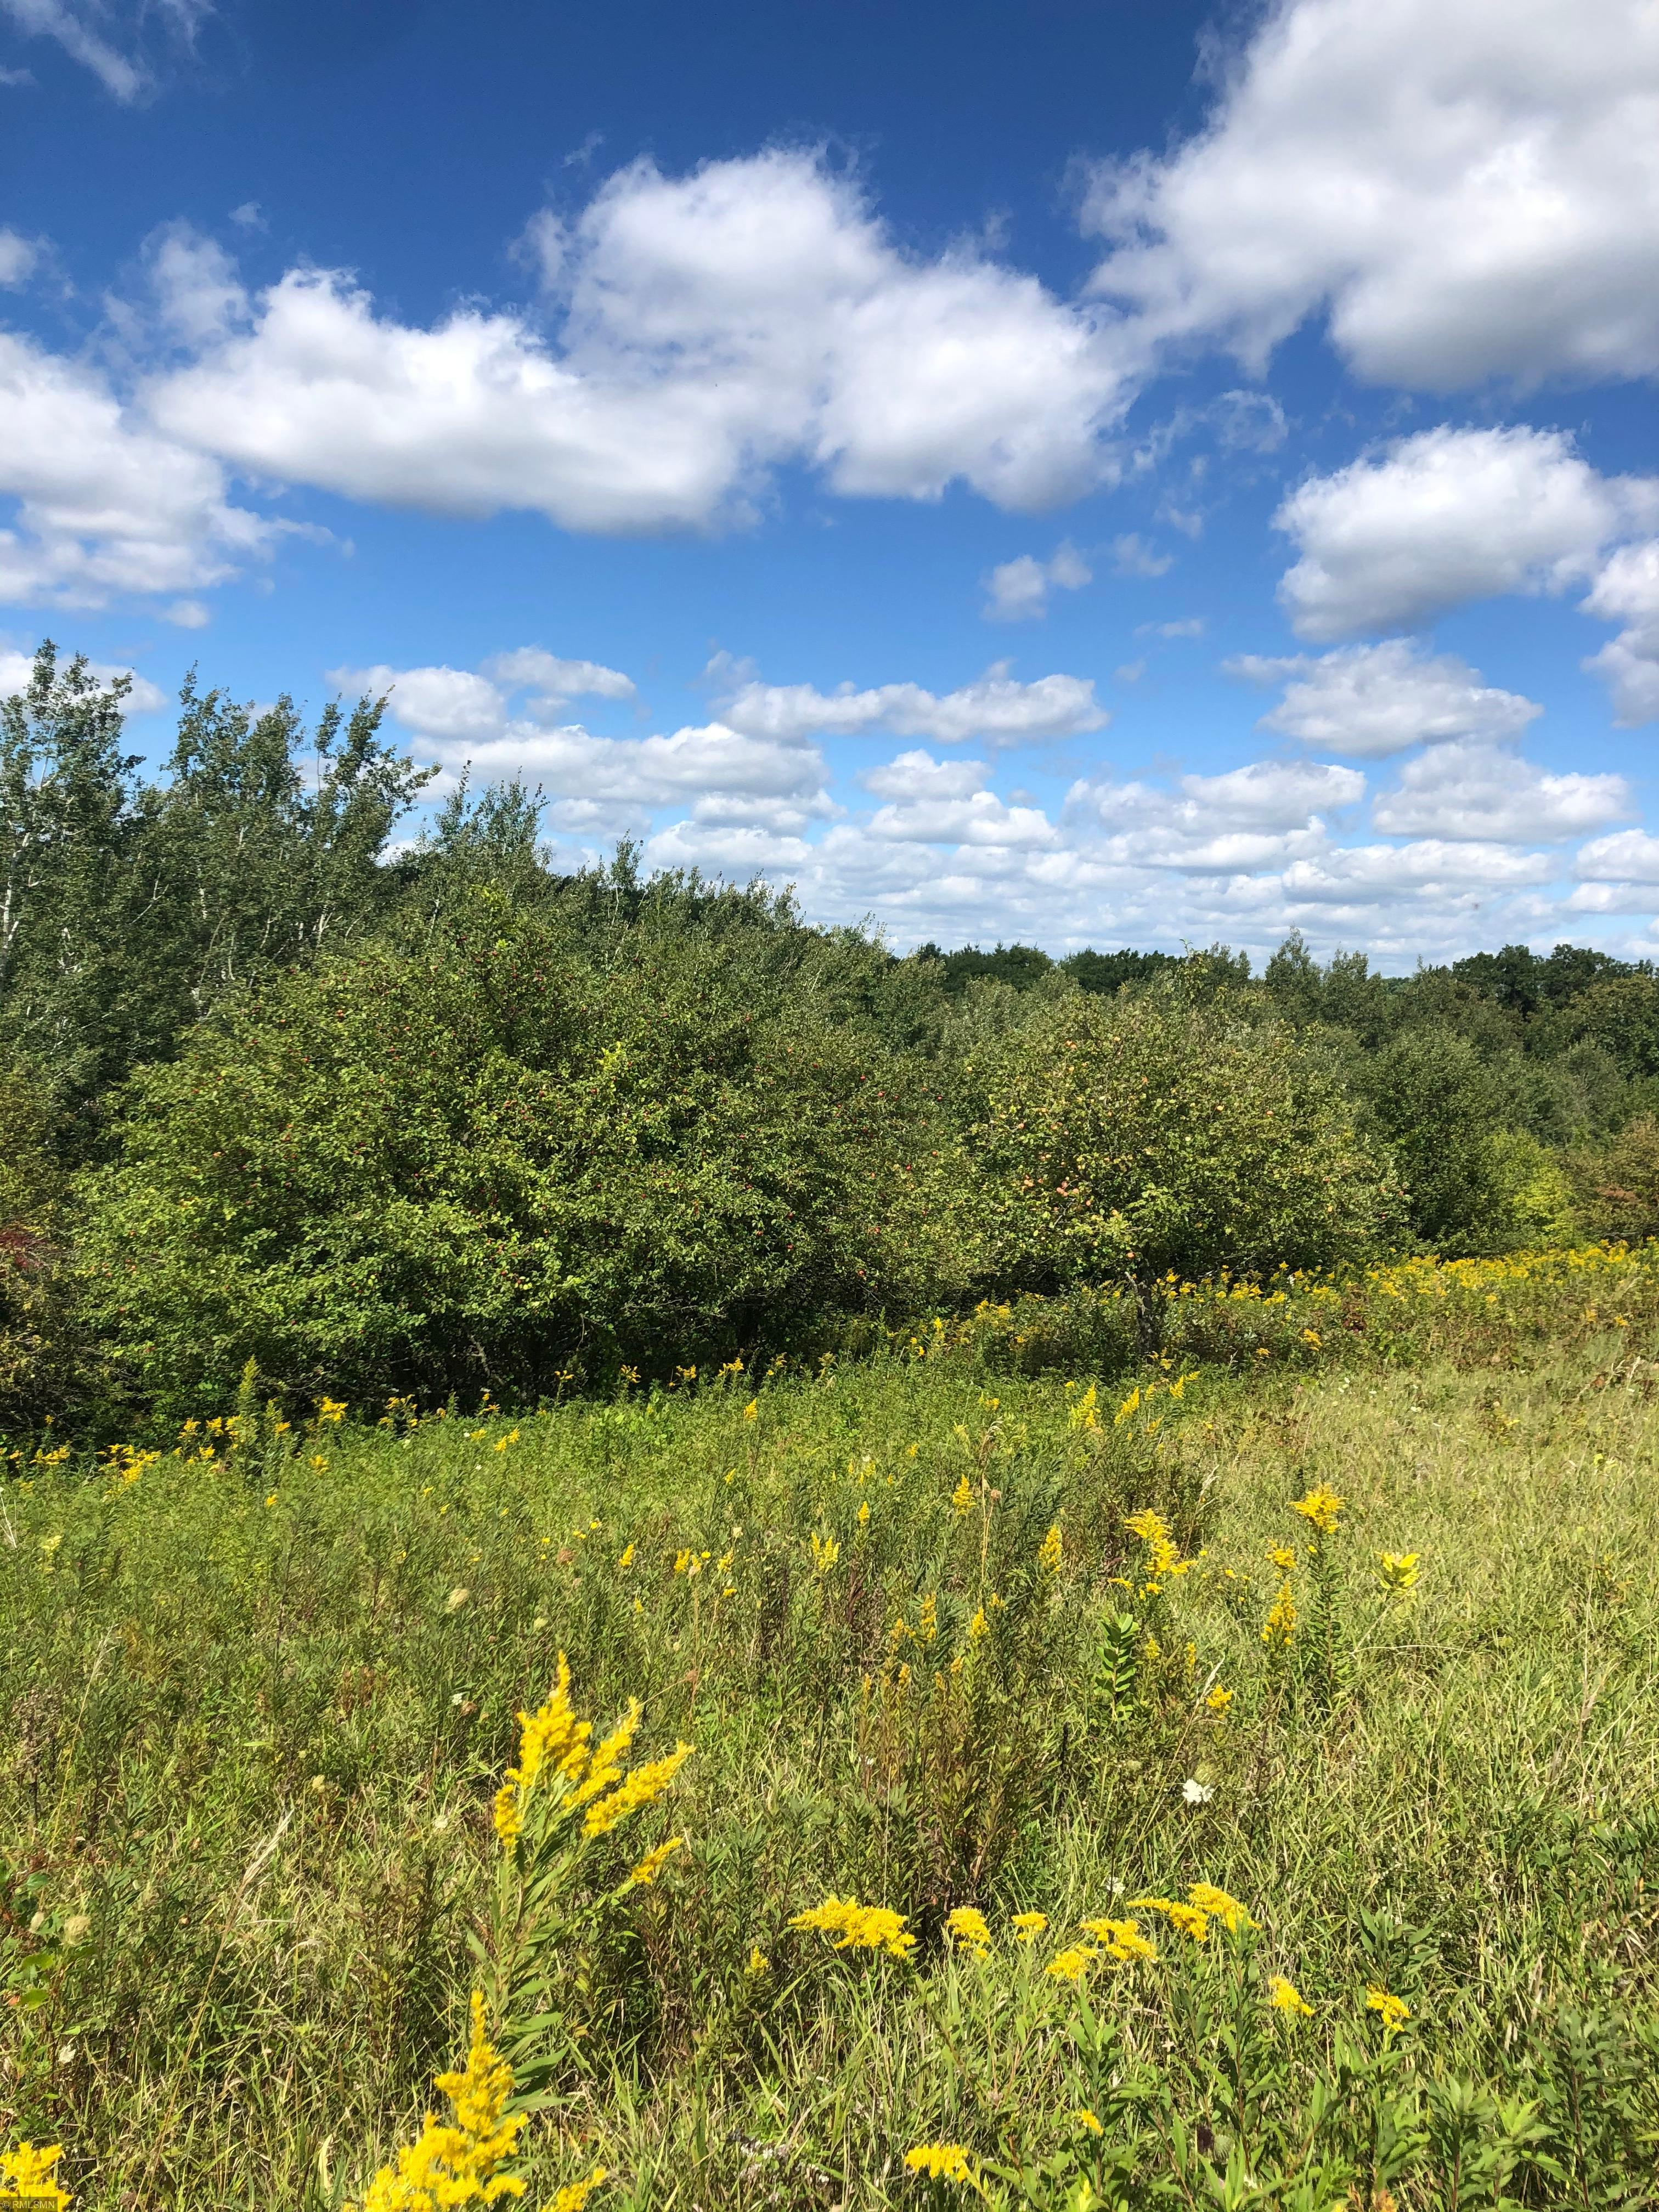 Tbd County Road 15 Property Photo 1